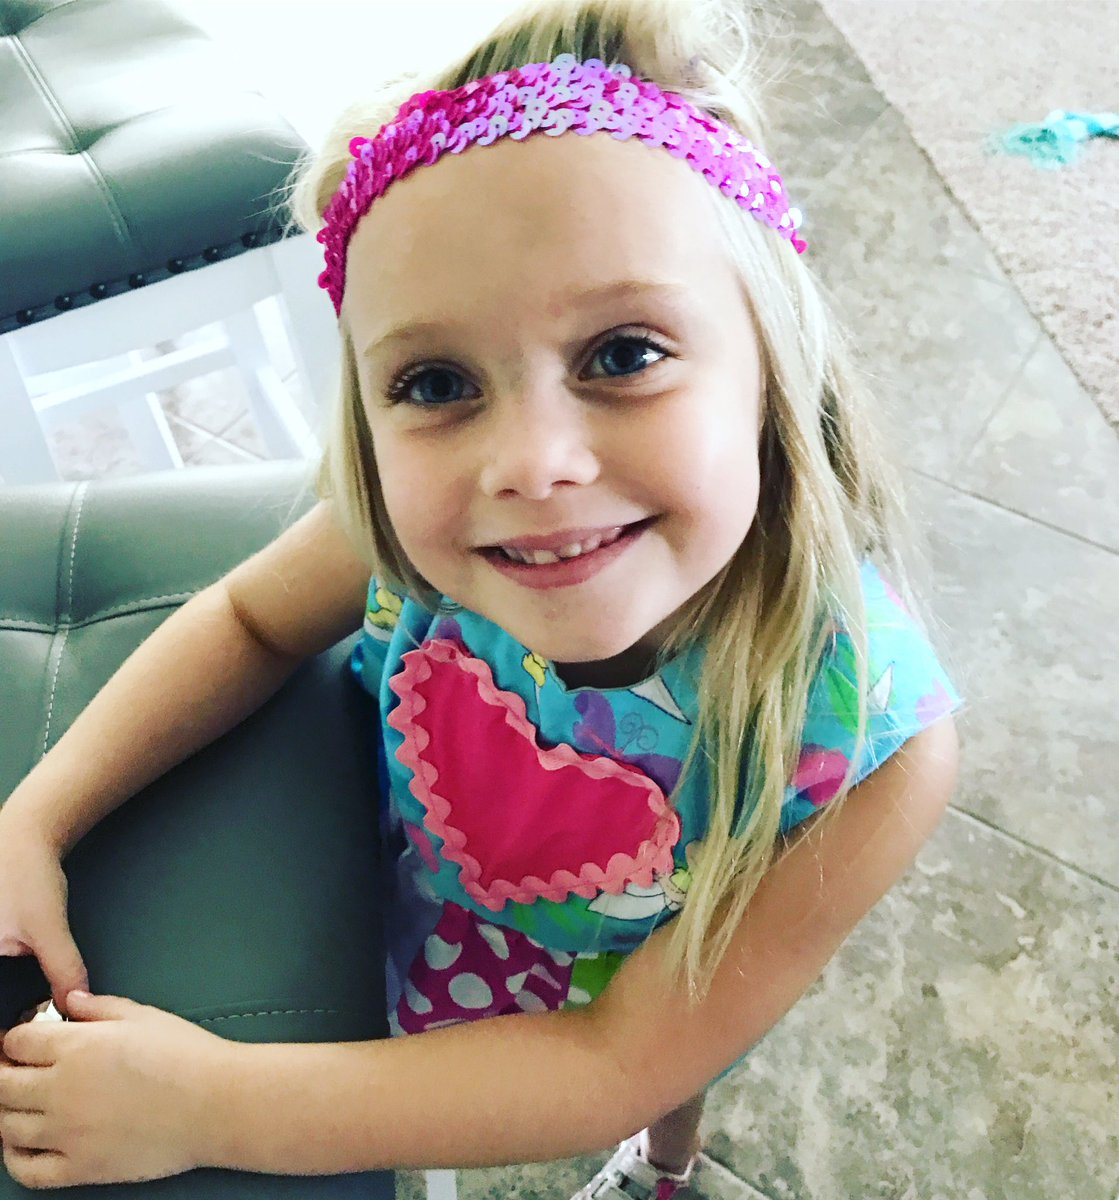 test Twitter Media - Even our precious future FUGErs are loving the sparkly headbands! We can't even handle this little one! https://t.co/Xd0cVMUvbW